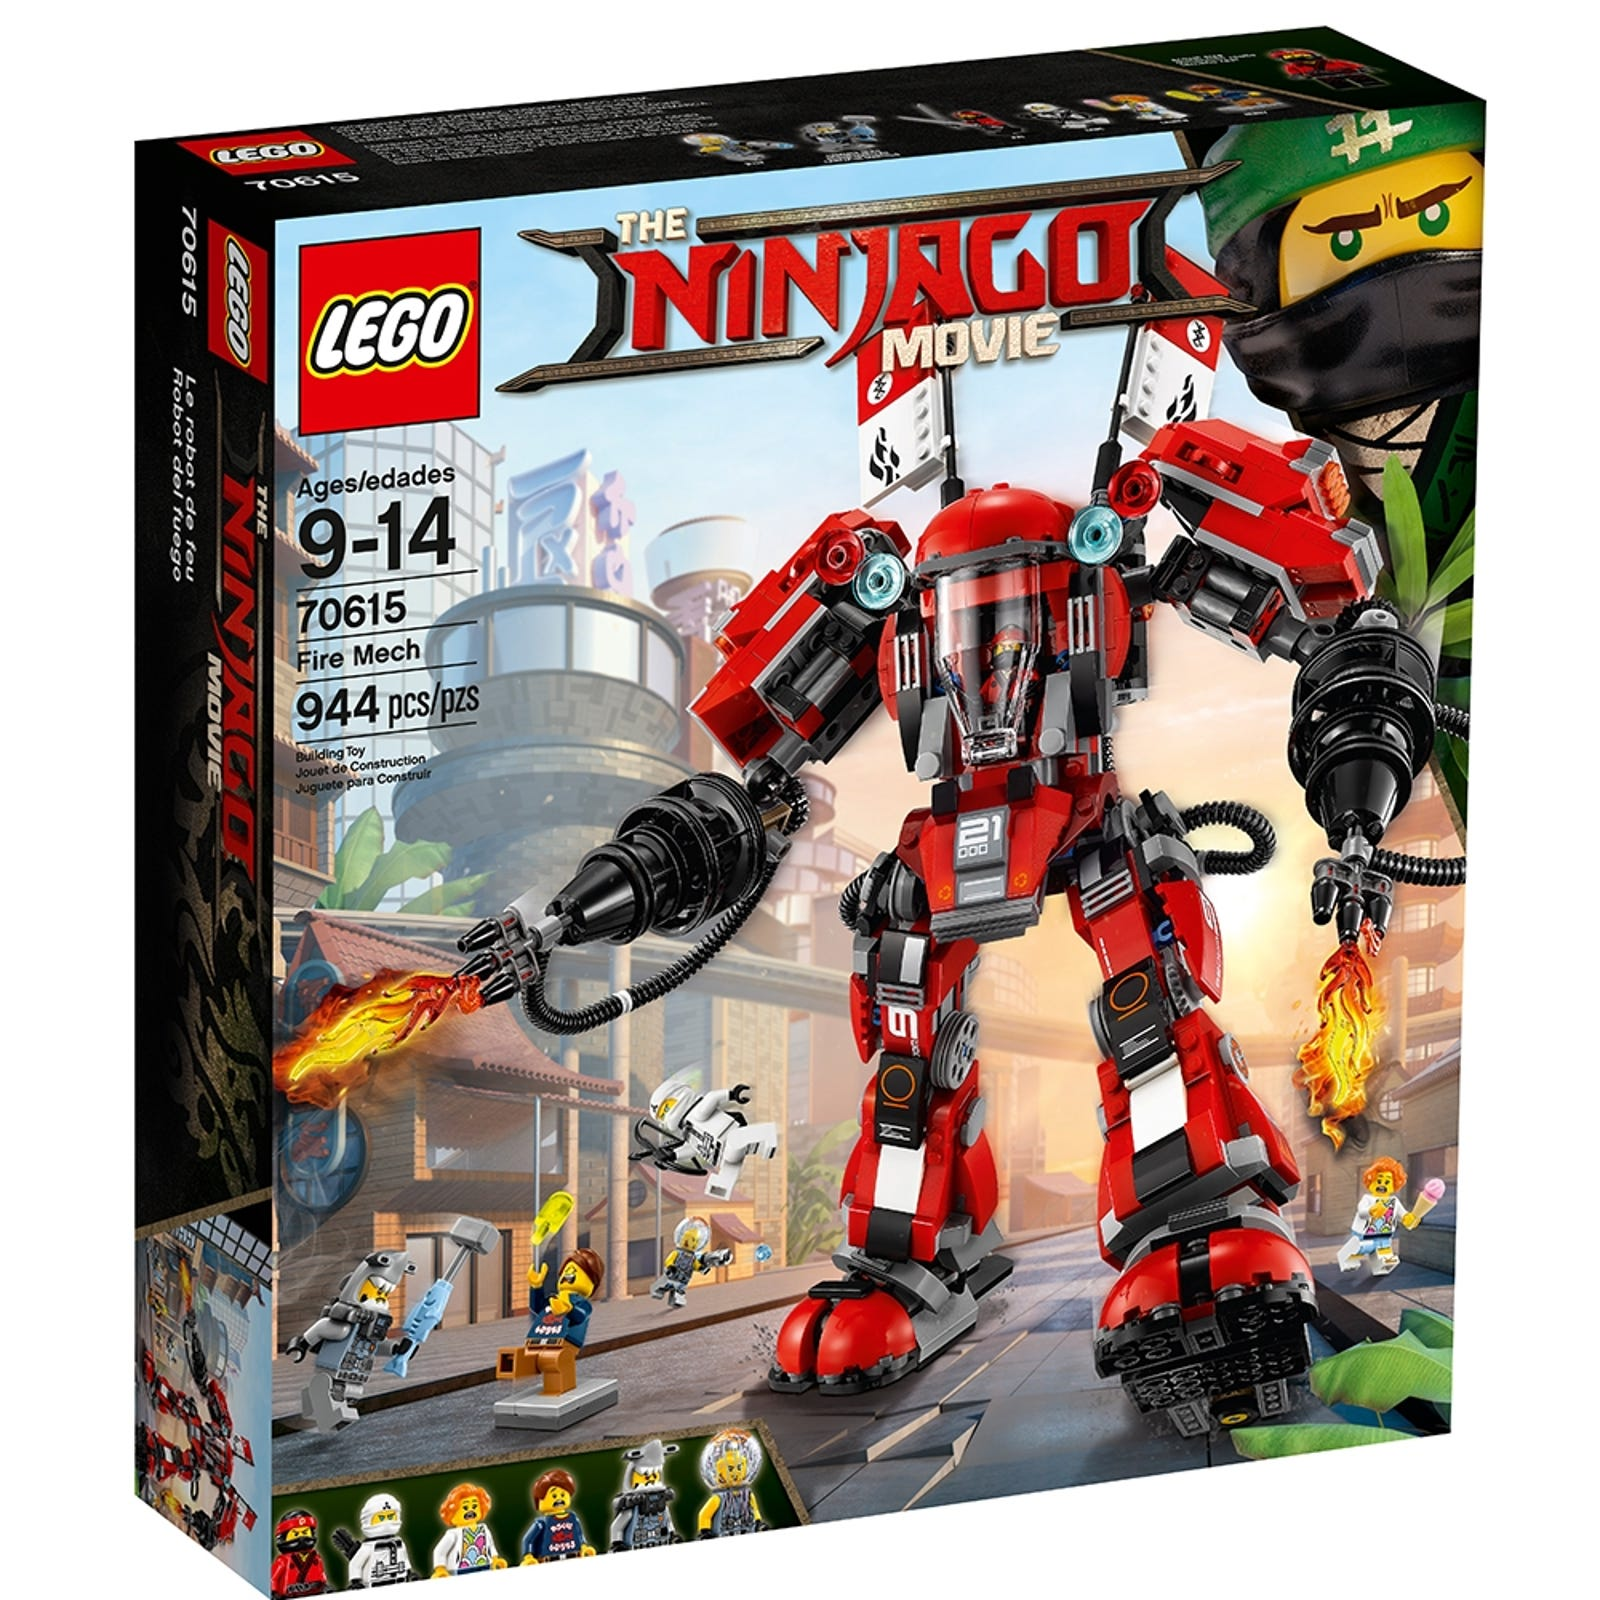 Fire Mech 70615 The Lego Ninjago Movie Buy Online At The Official Lego Shop Us